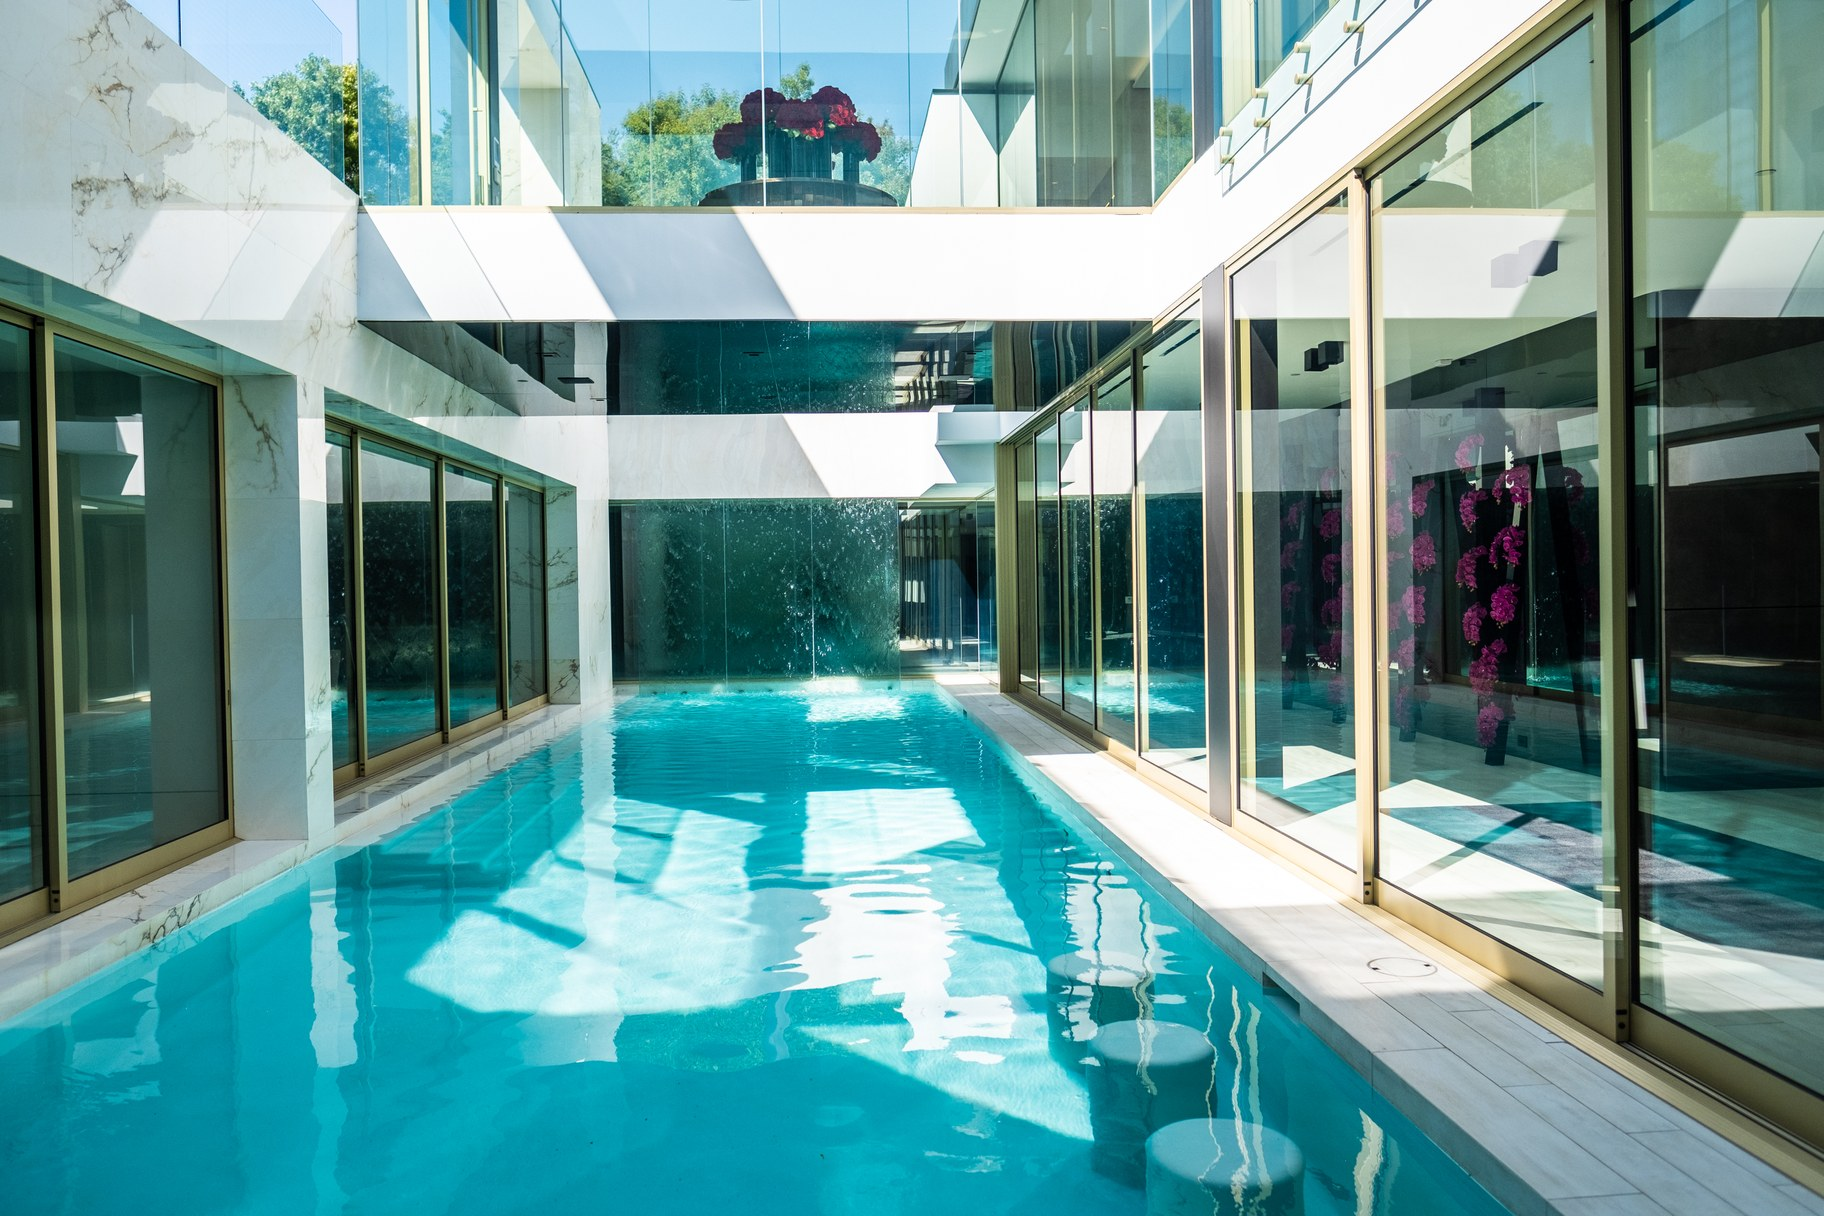 The infinity pool at the basement level.